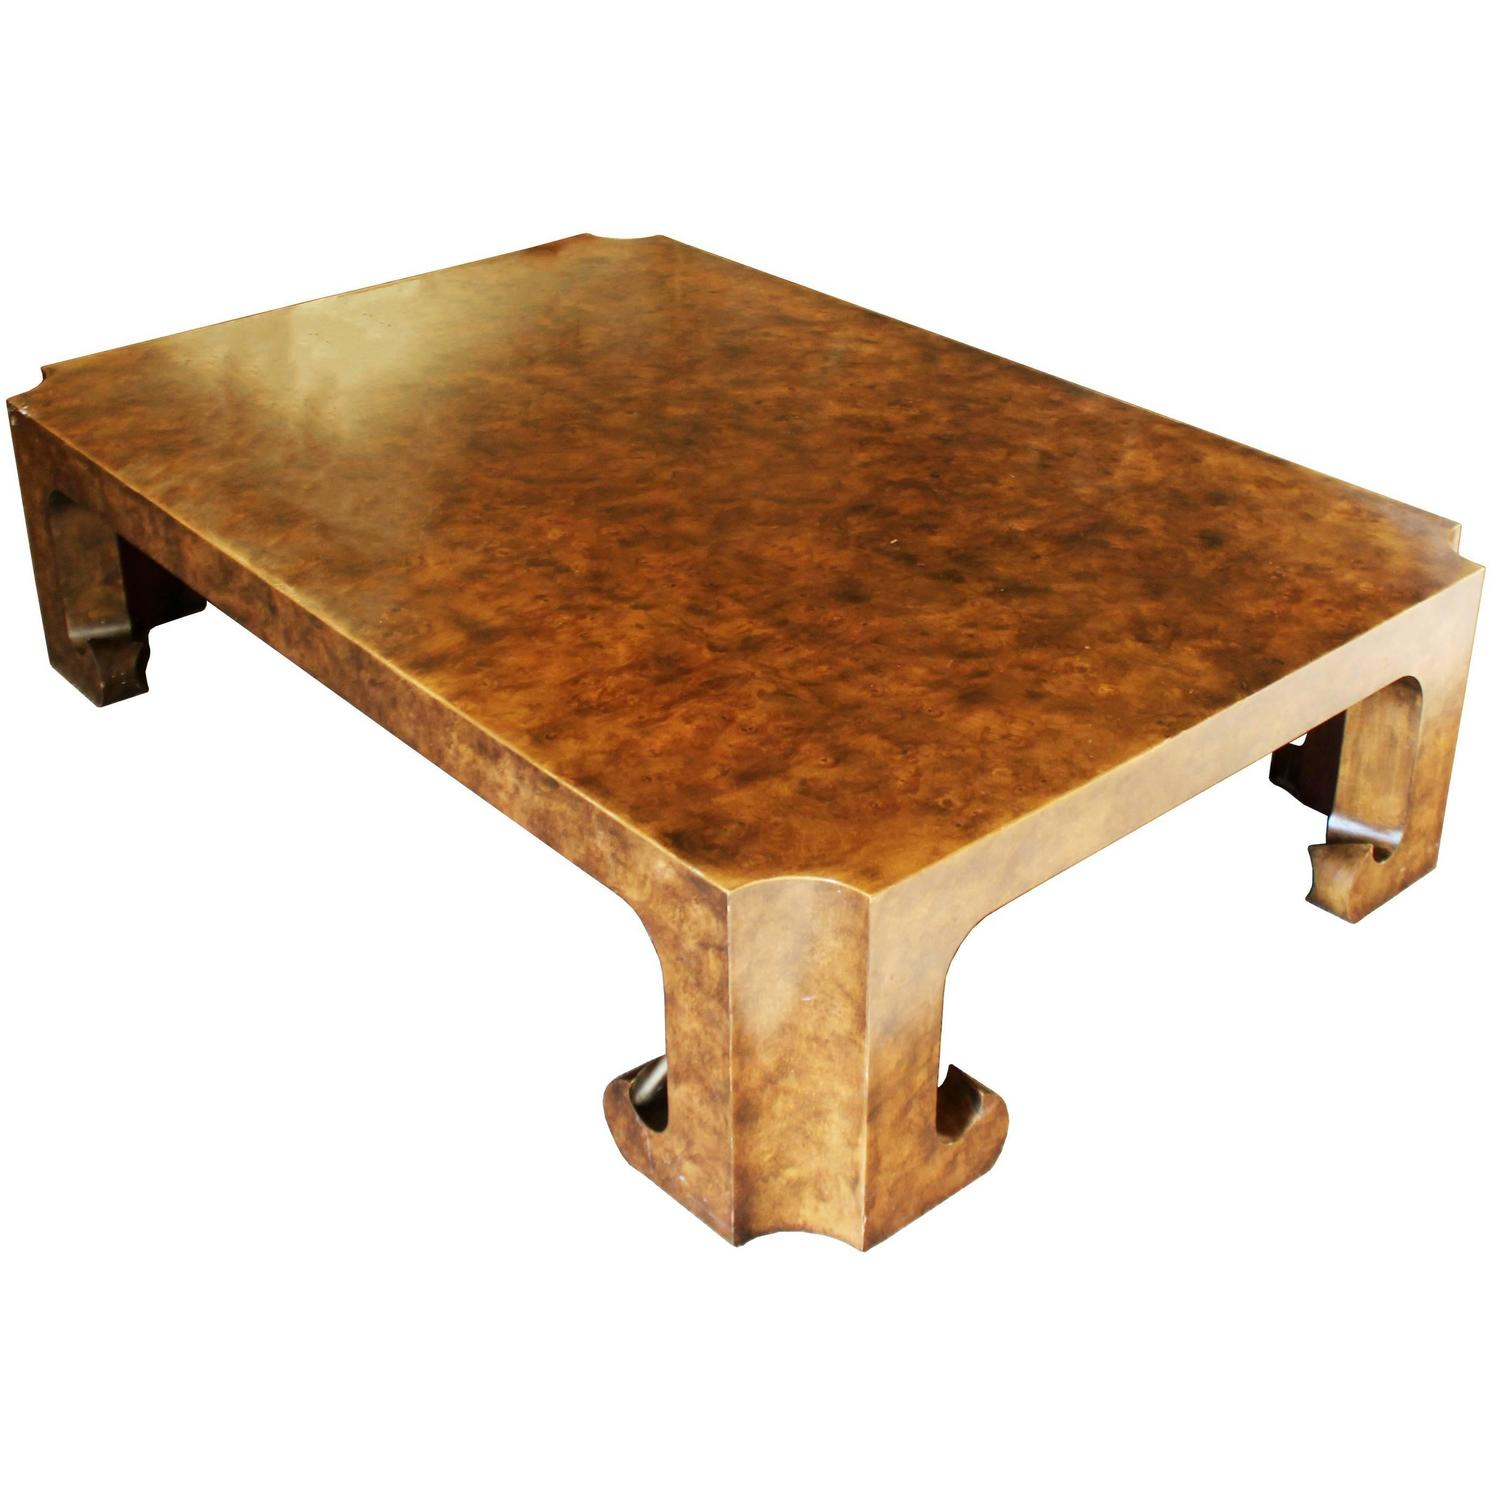 Baker Burl Wood Asian Coffee Table Collector s Edition at 1stdibs